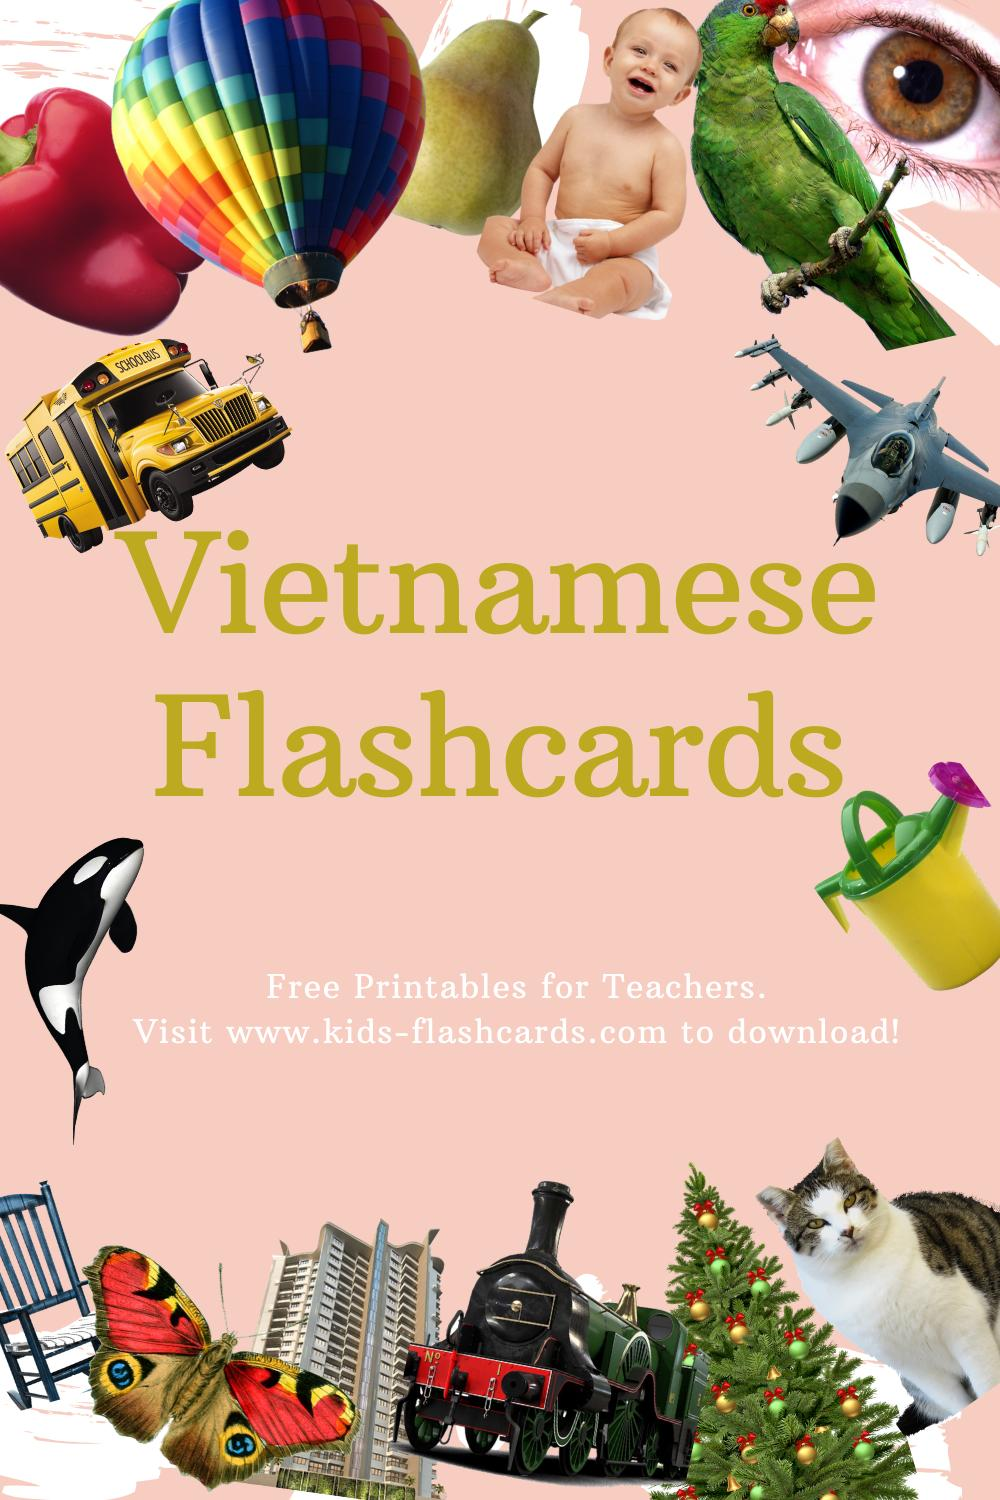 Worksheets to learn Vietnamese language